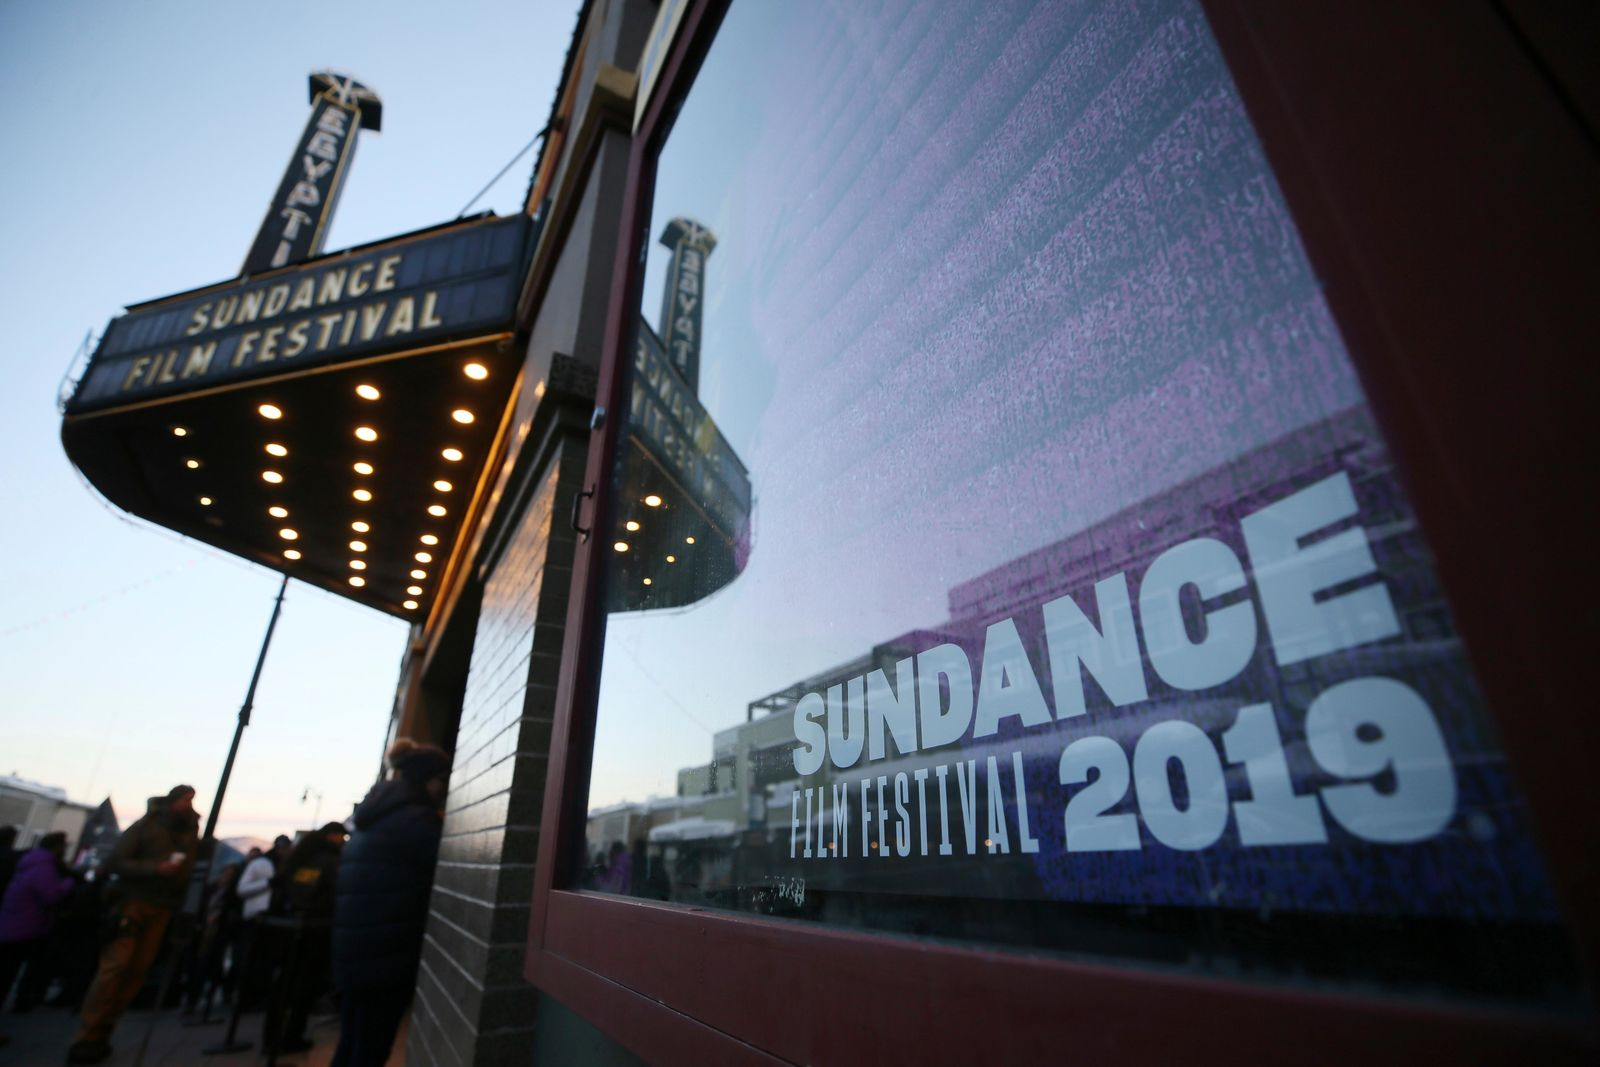 Utah brings in five new film productions this year. (Photo by Danny Moloshok/Invision/AP)